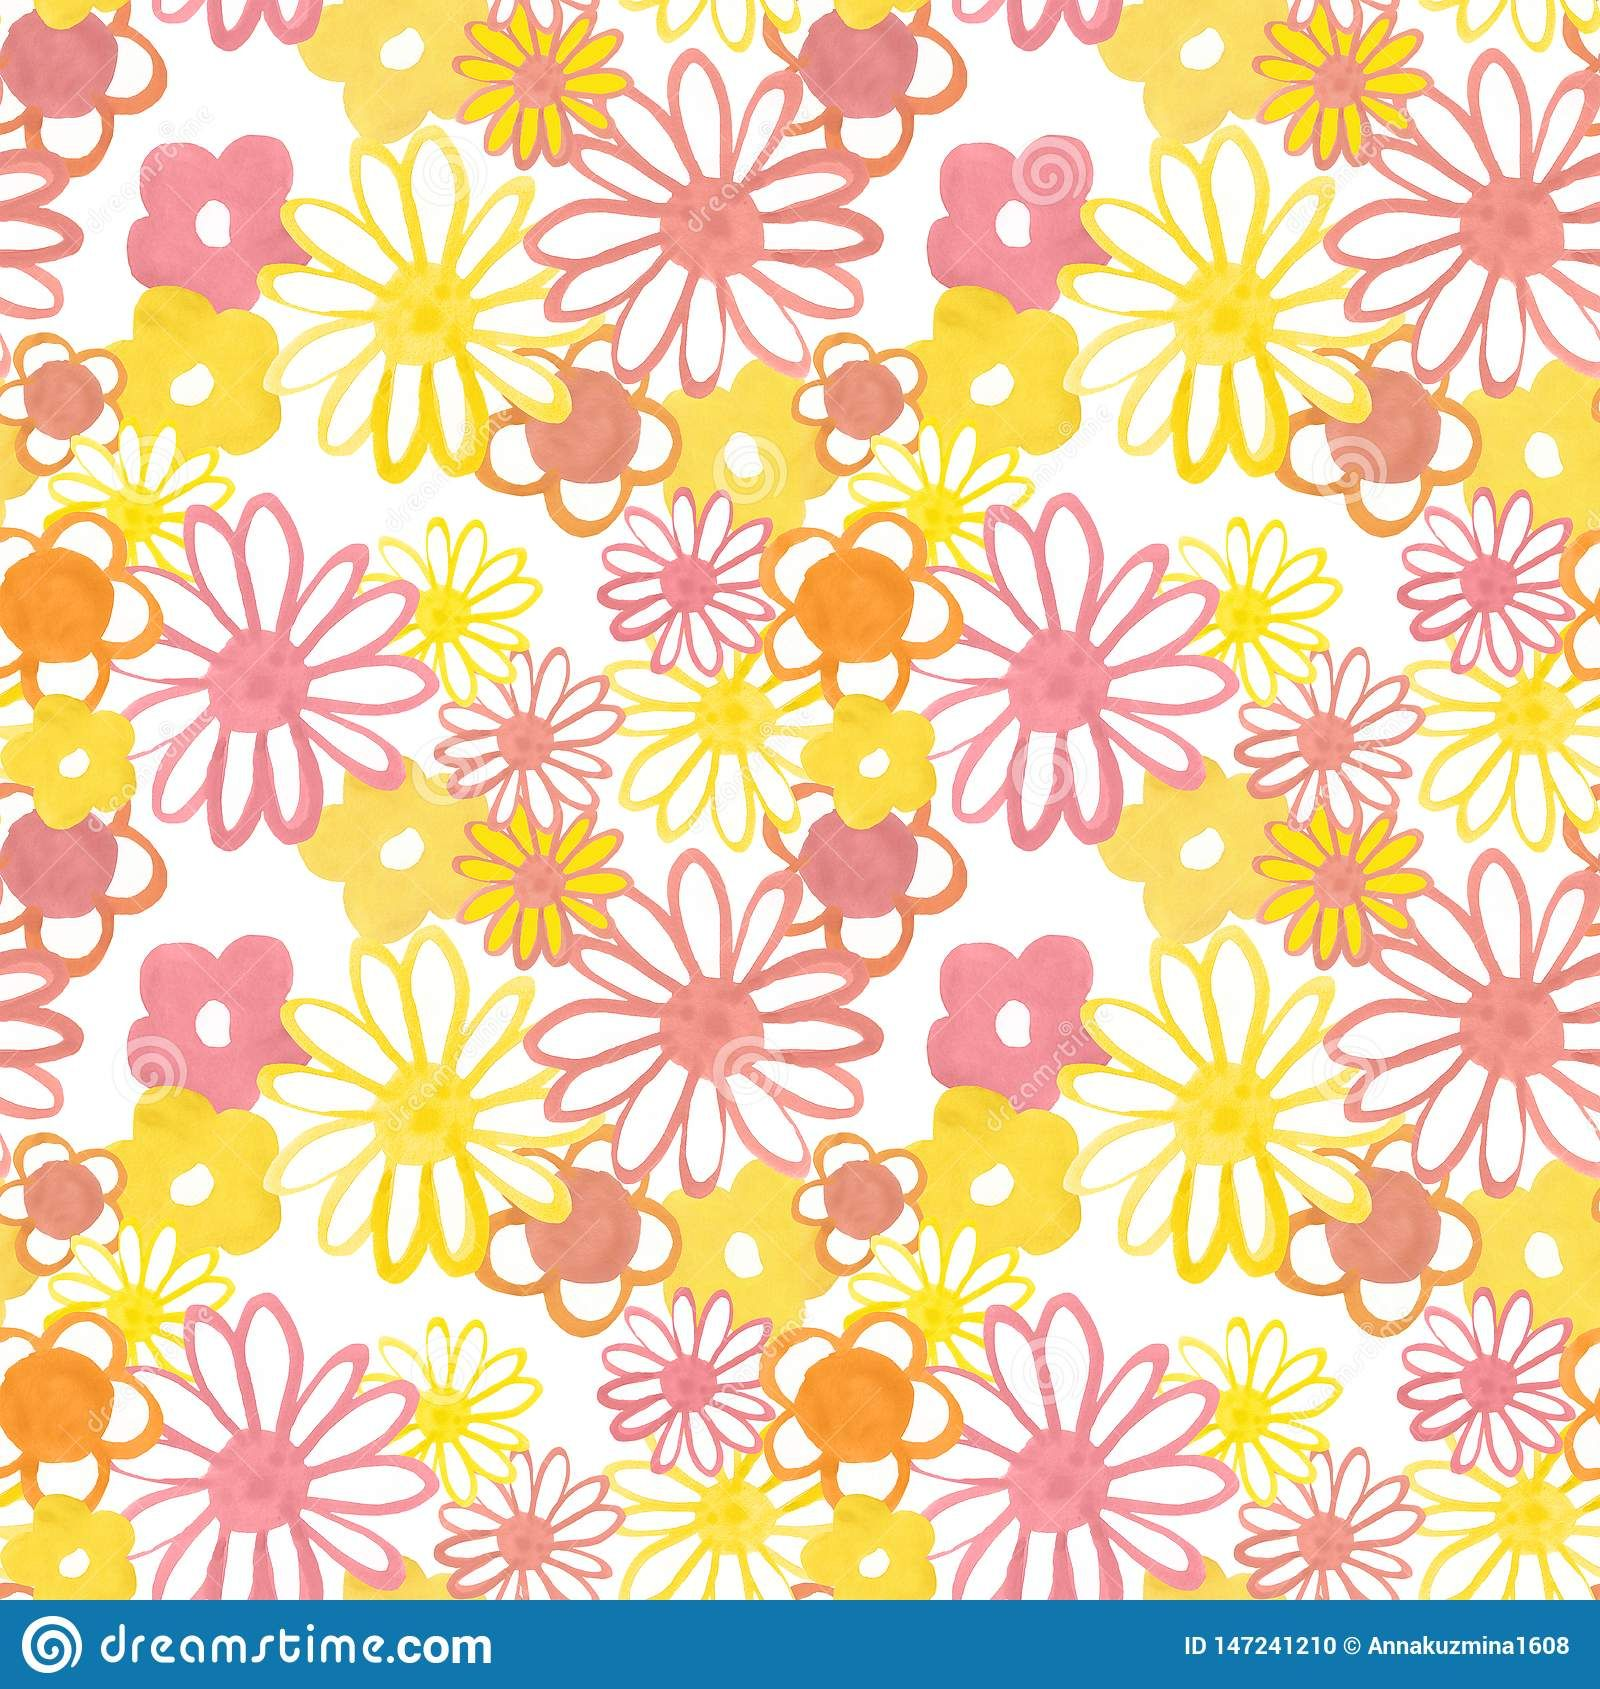 Pink Yellow And Orange Floral Seamless Pattern Bohemian Vintage Pattern In 60s And 70s Style Flower Power Ye Flower Power Seamless Patterns Vintage Pattern